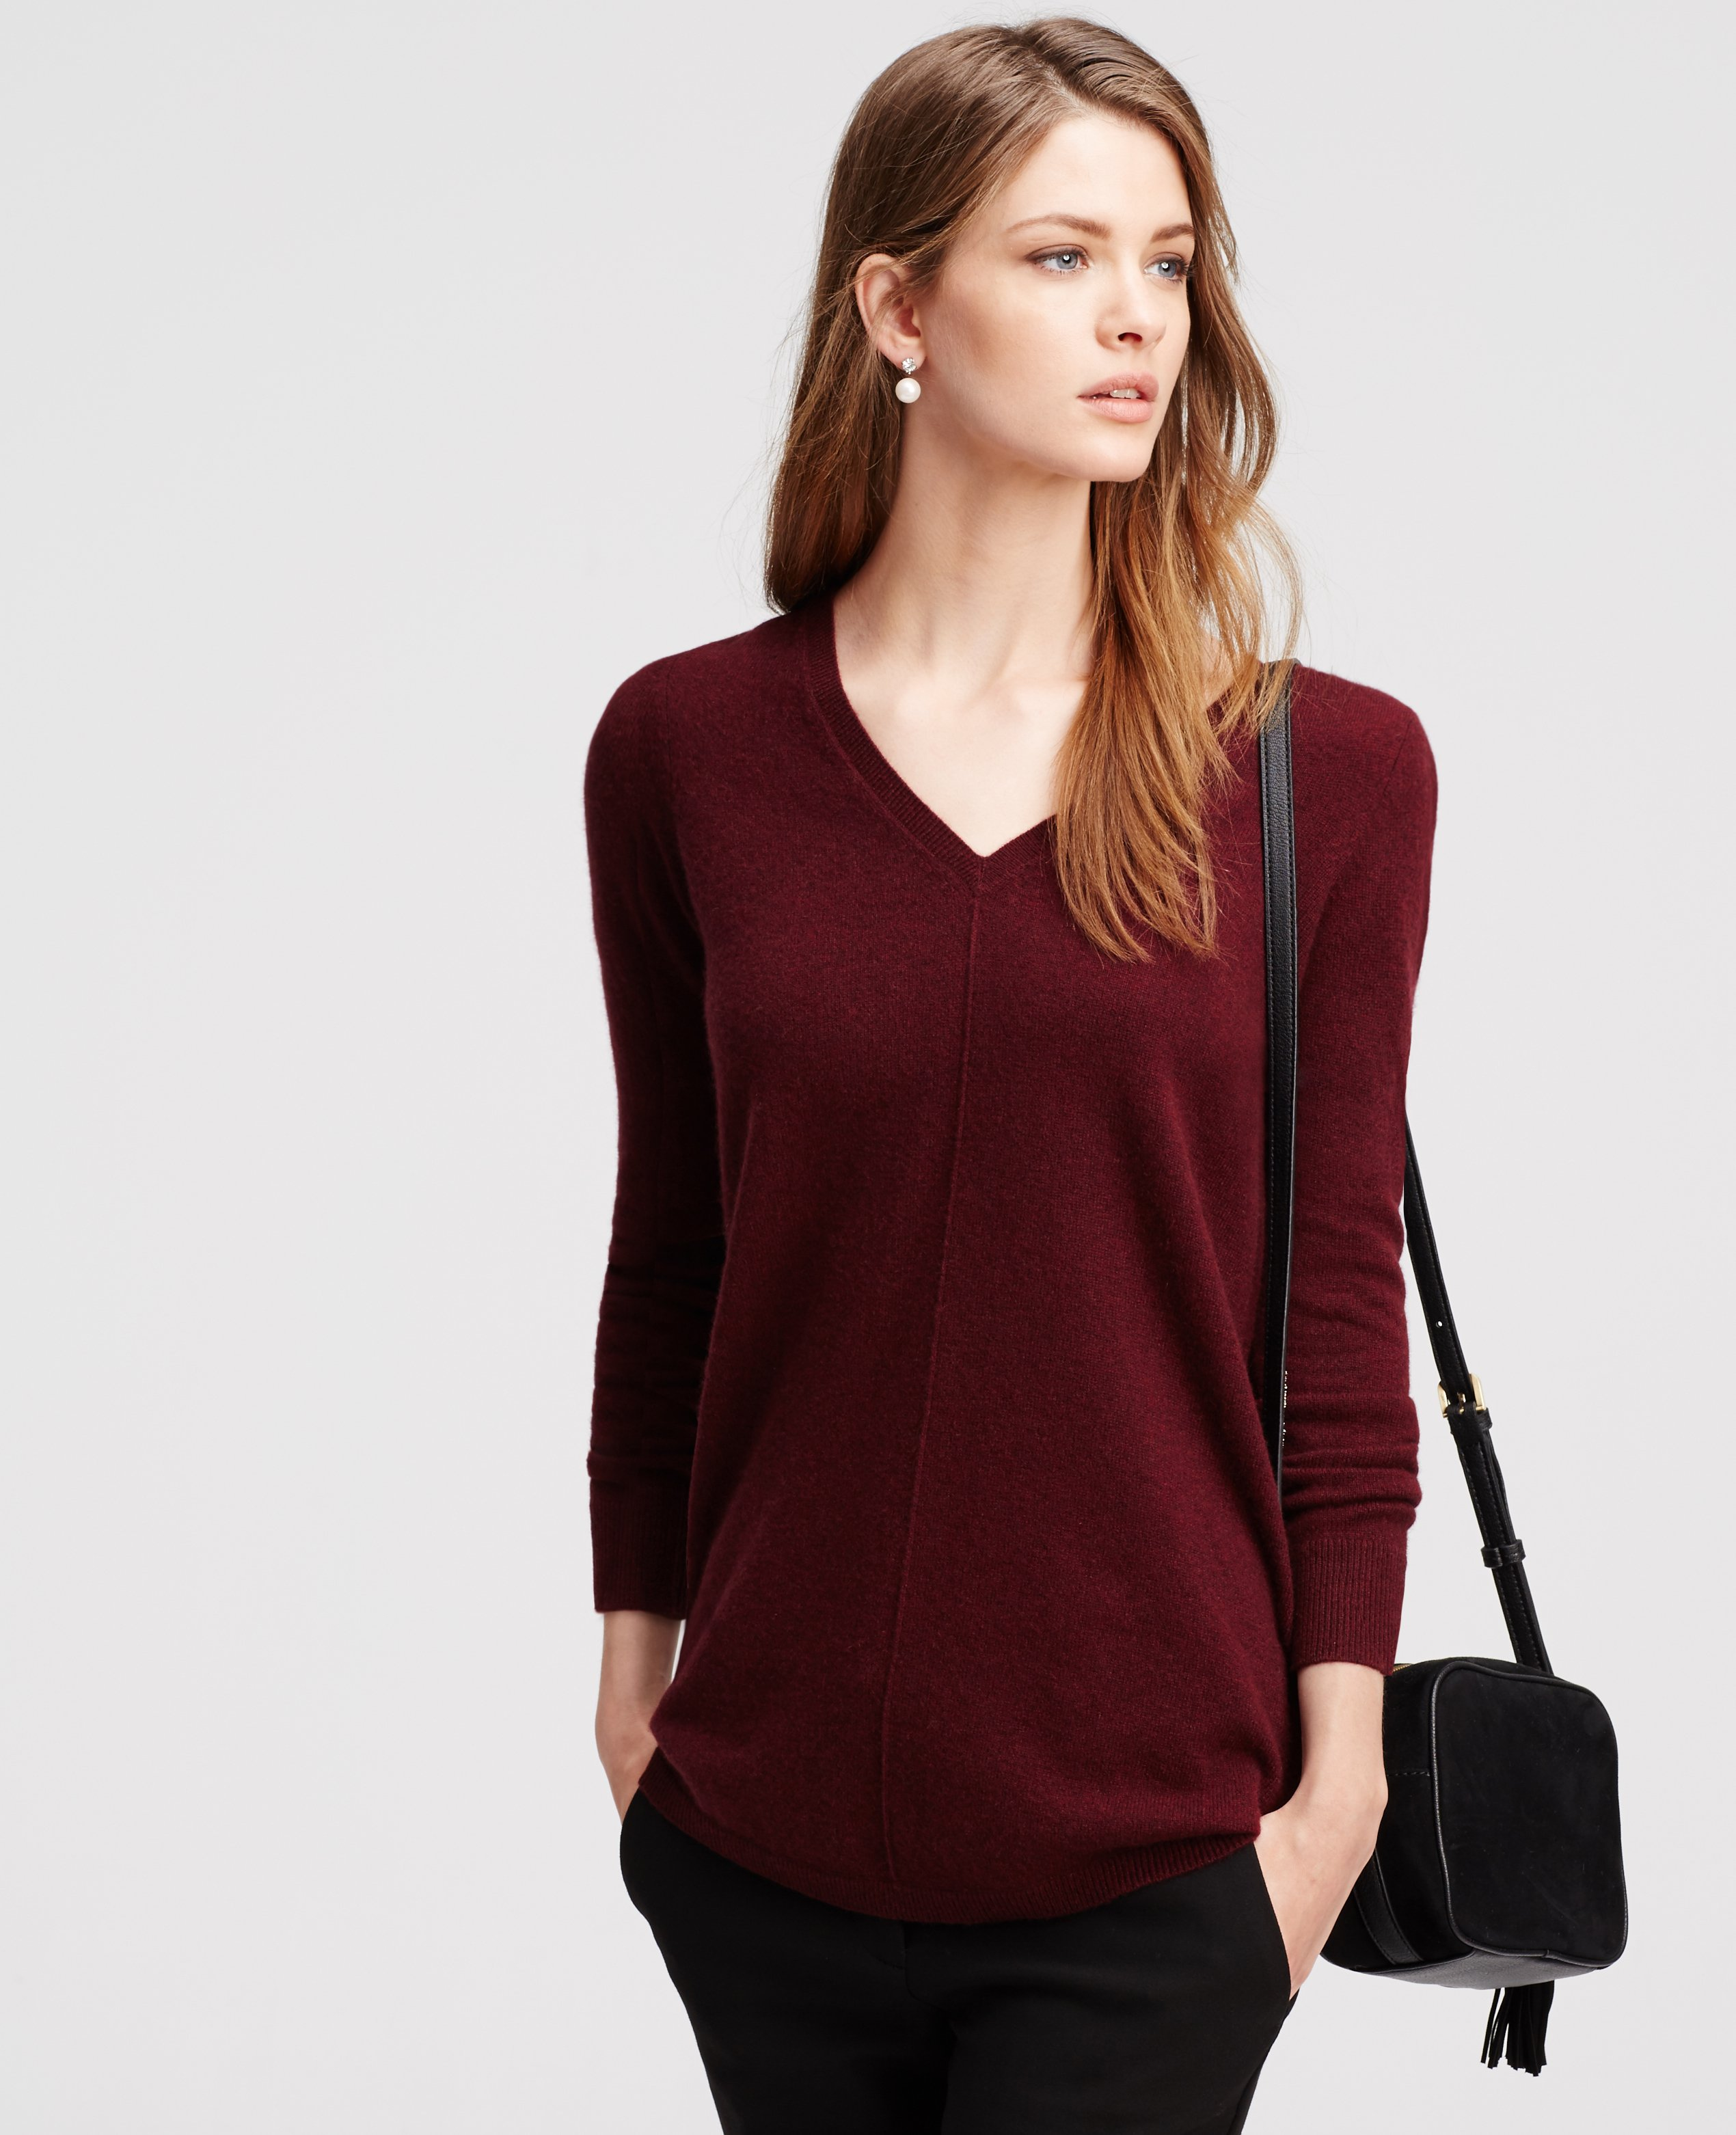 Ann taylor Petite Double V Cashmere Sweater in Red | Lyst